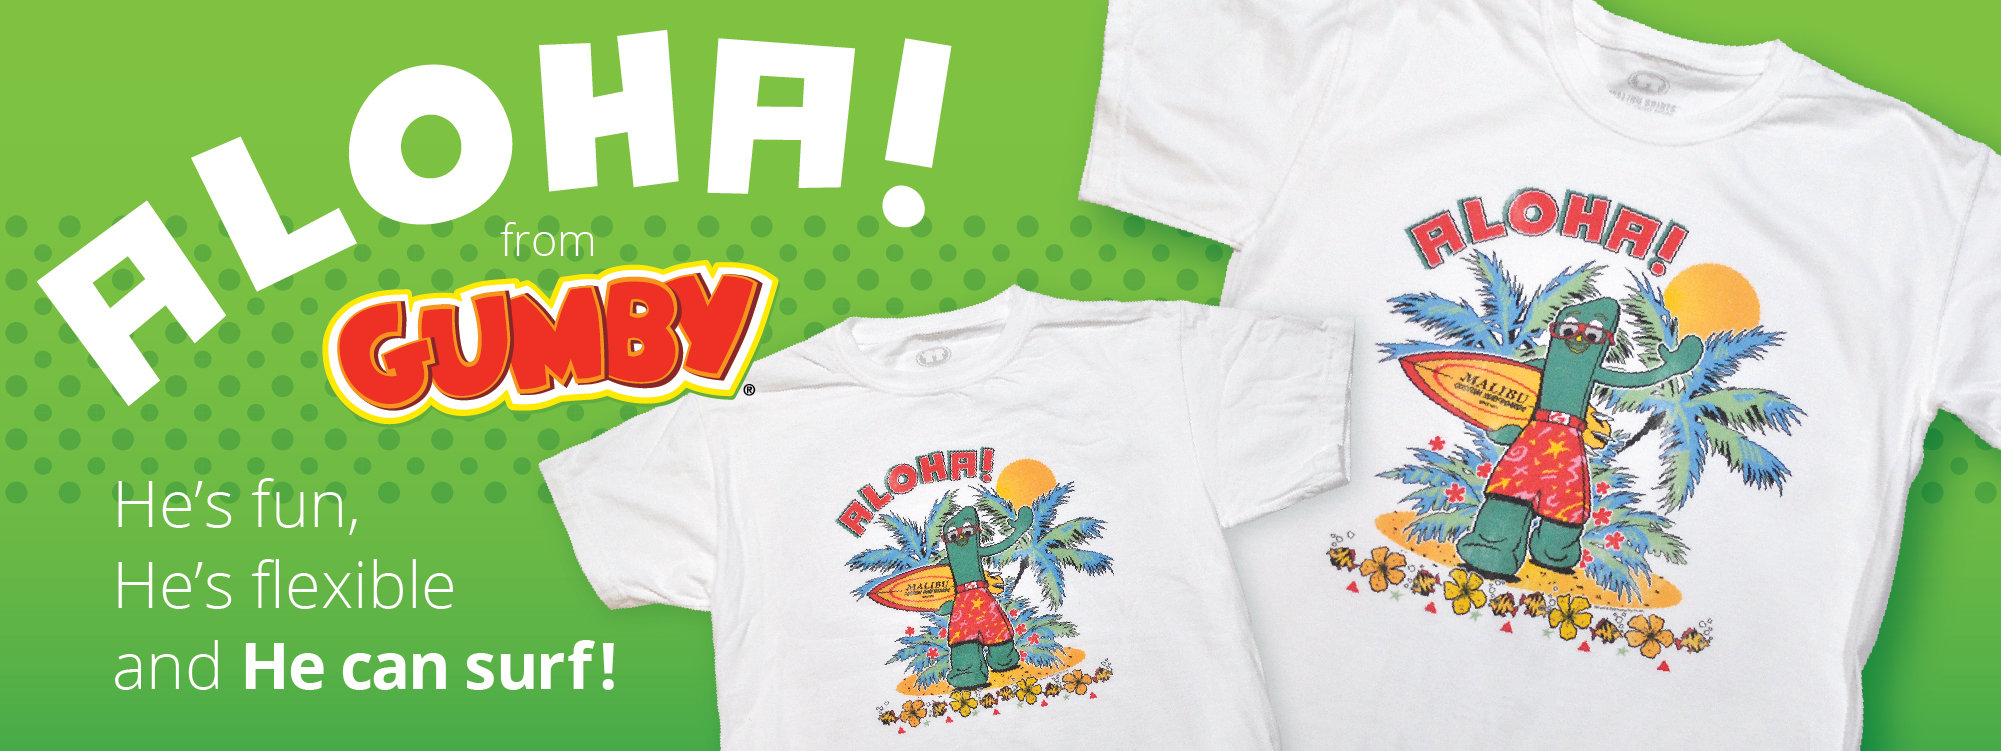 new gumby t-shirts